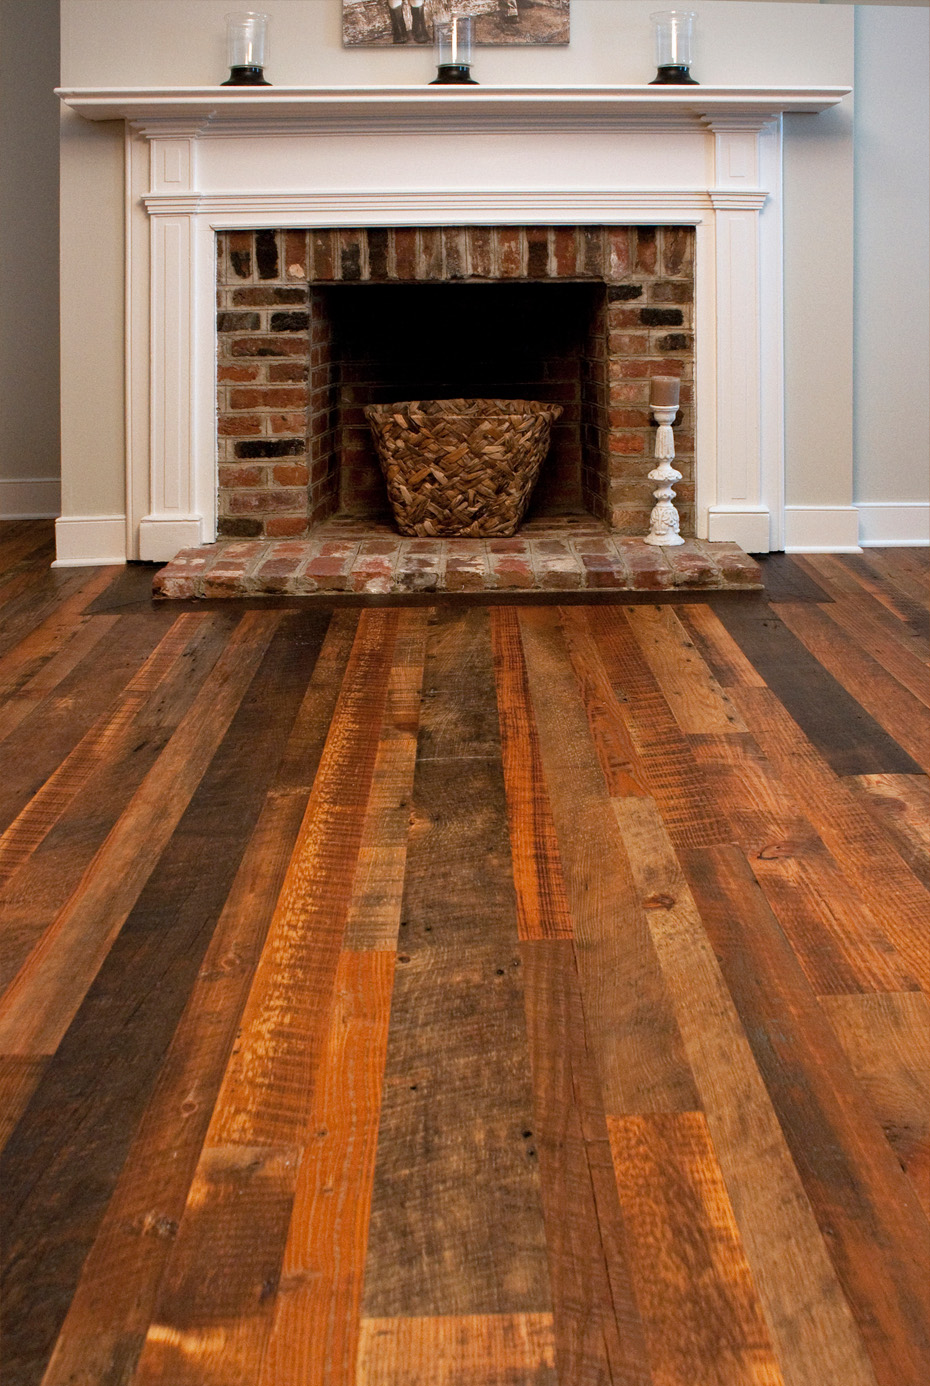 Distressed reclaimed antique heart pine flooring Salvaged pine flooring